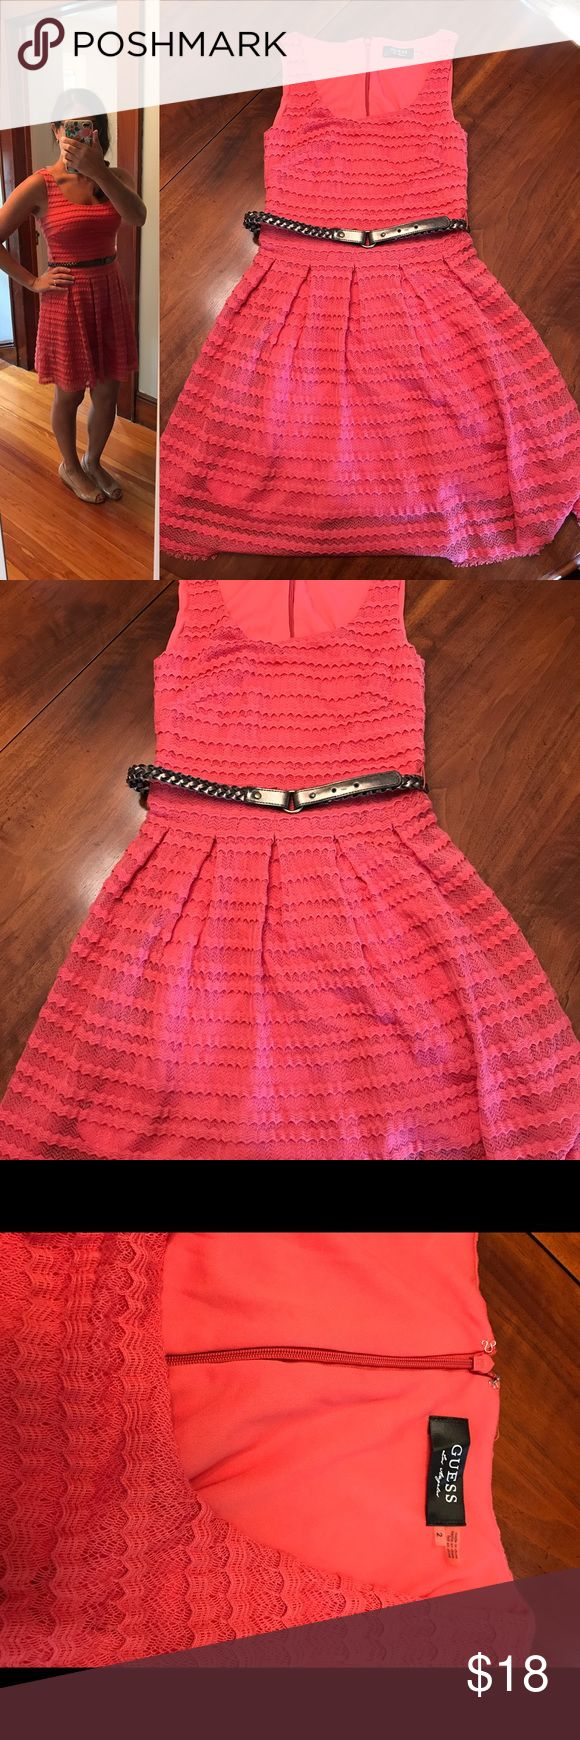 Guess salmon color dress with metallic belt Guess salmon/coral color dress with metallic belt, size 2. Dress is in good condition and very stretchy and comfortable. Zipper back and decorative belt is included. 69% polyester, 30% cotton, 1% spandex. Dry clean. Guess Dresses